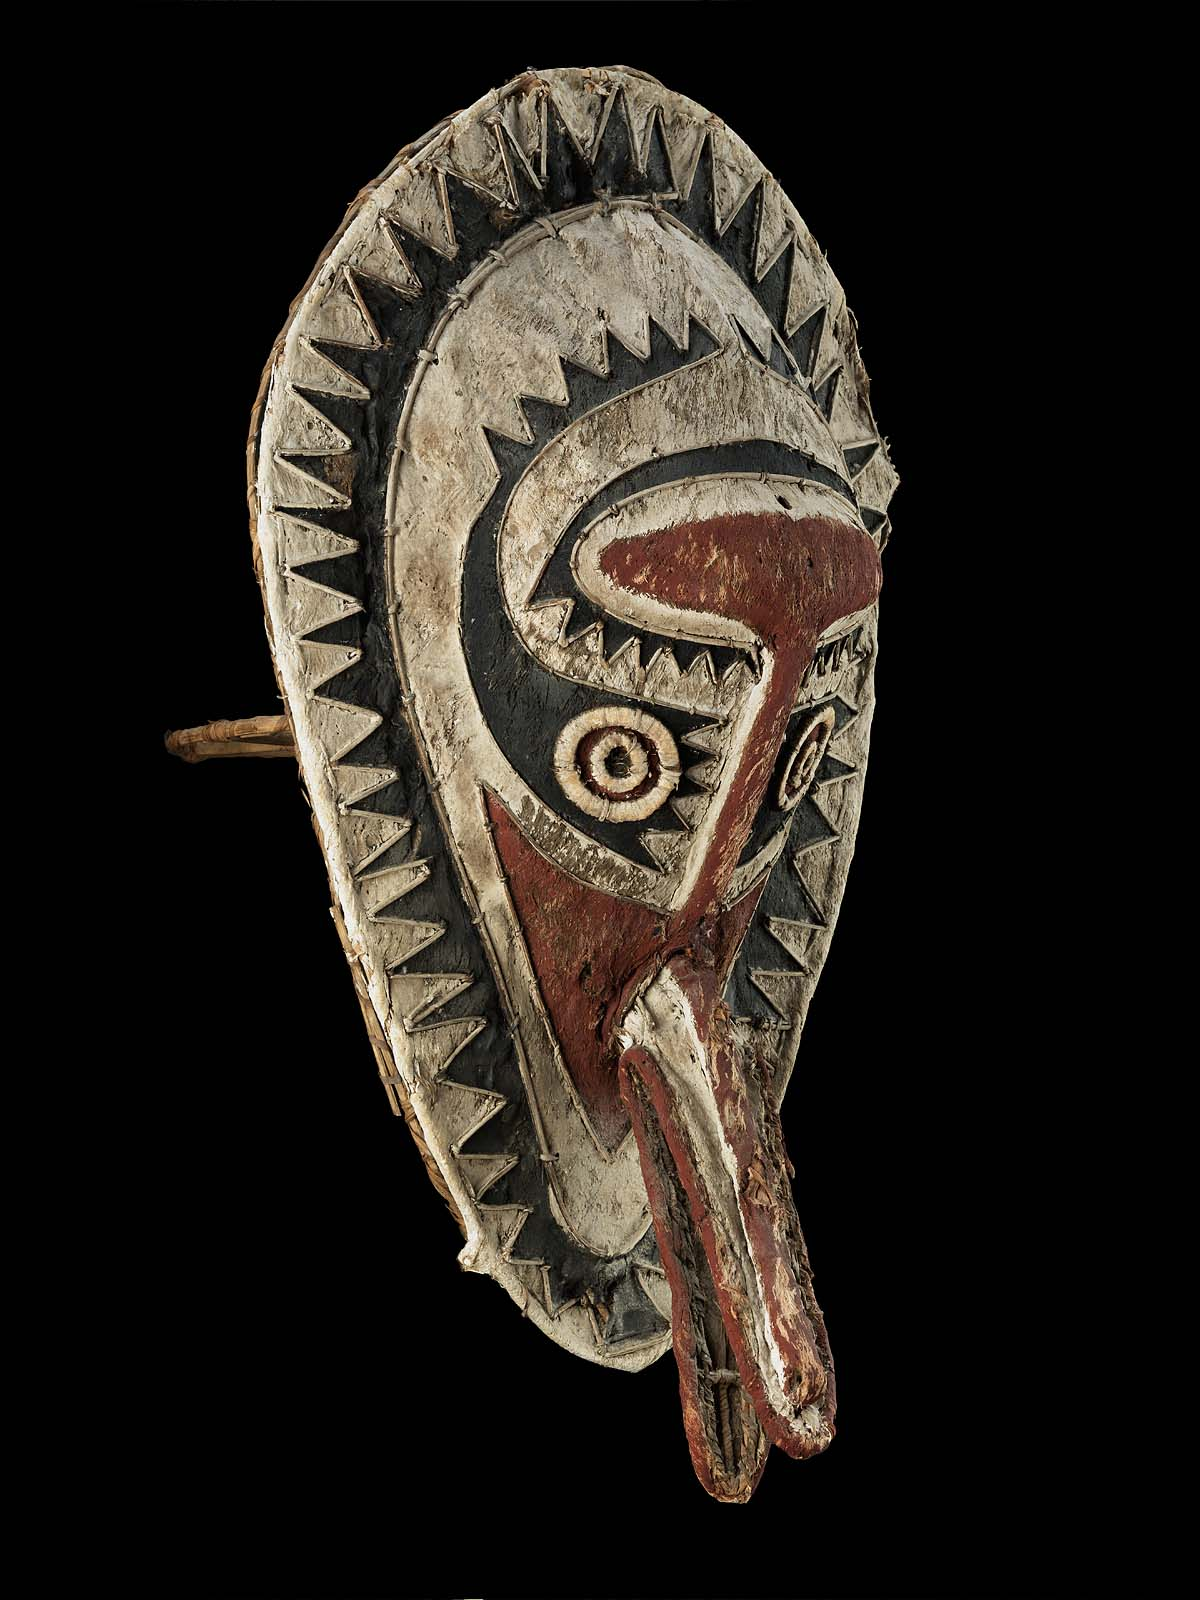 Object Type: Mask Indigenous Name: eharo Culture/Location: Papua New Guinea Date: Late 19th -Early 20th Materials: barkcloth, fiiber, cane, paint Dimensions: 61 cm Institutions and accession number: Museum of Fine Arts Boston, 2014.308